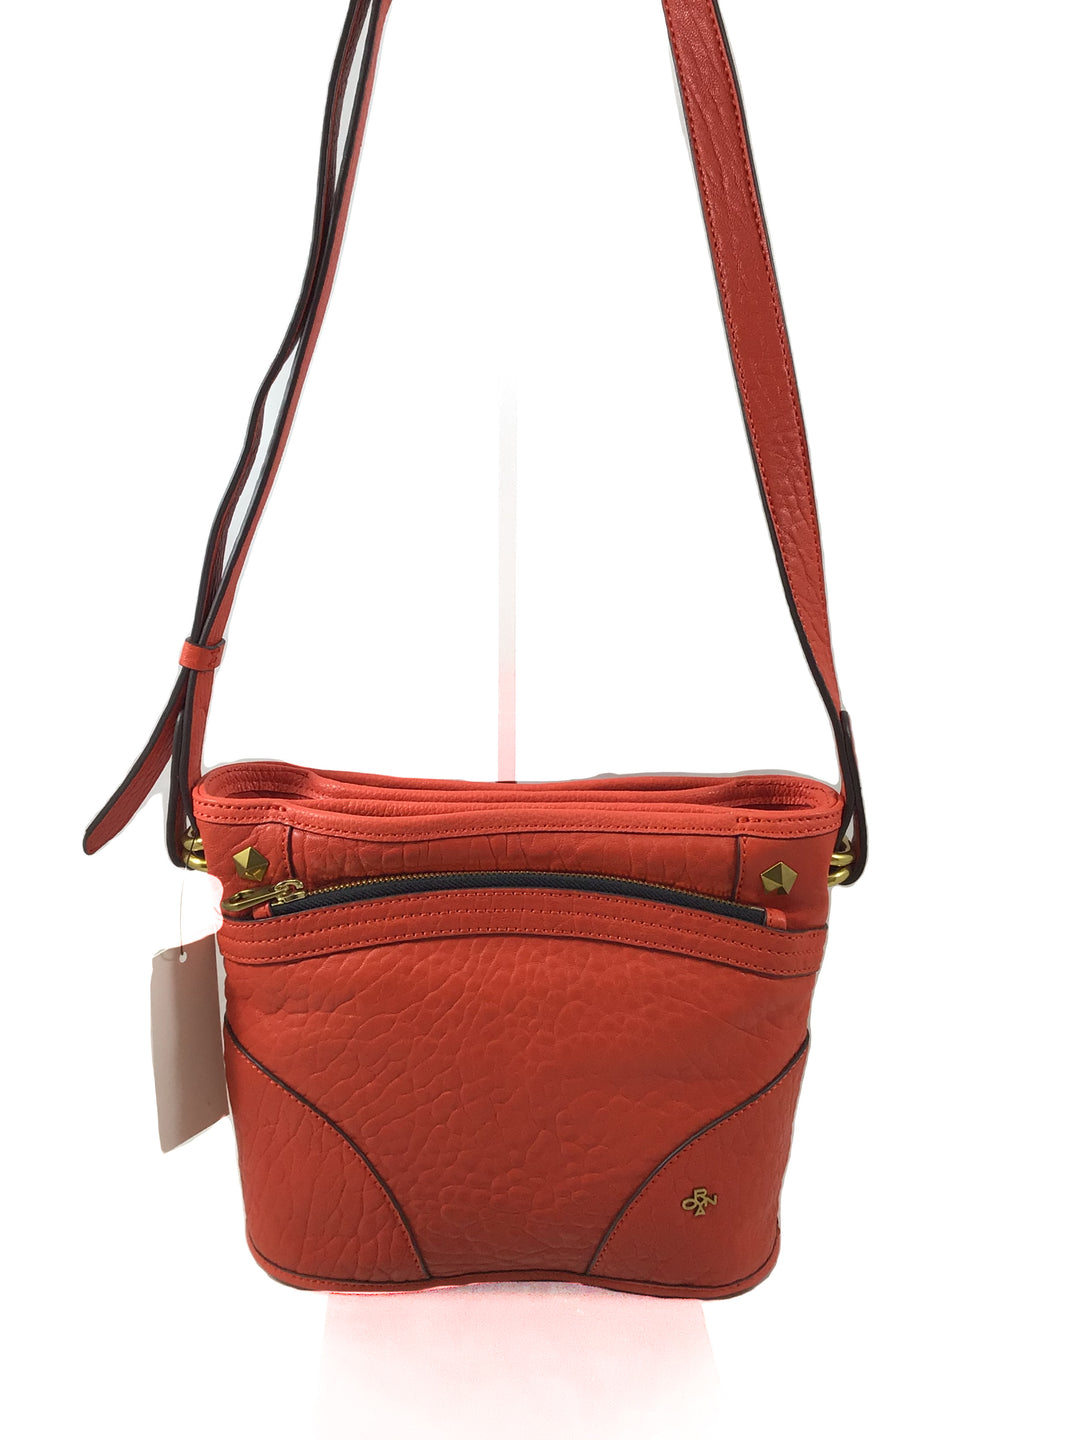 Primary Photo - BRAND: ORYANY <BR>STYLE: HANDBAG <BR>COLOR: ORANGE <BR>SIZE: SMALL <BR>SKU: 213-213143-9272